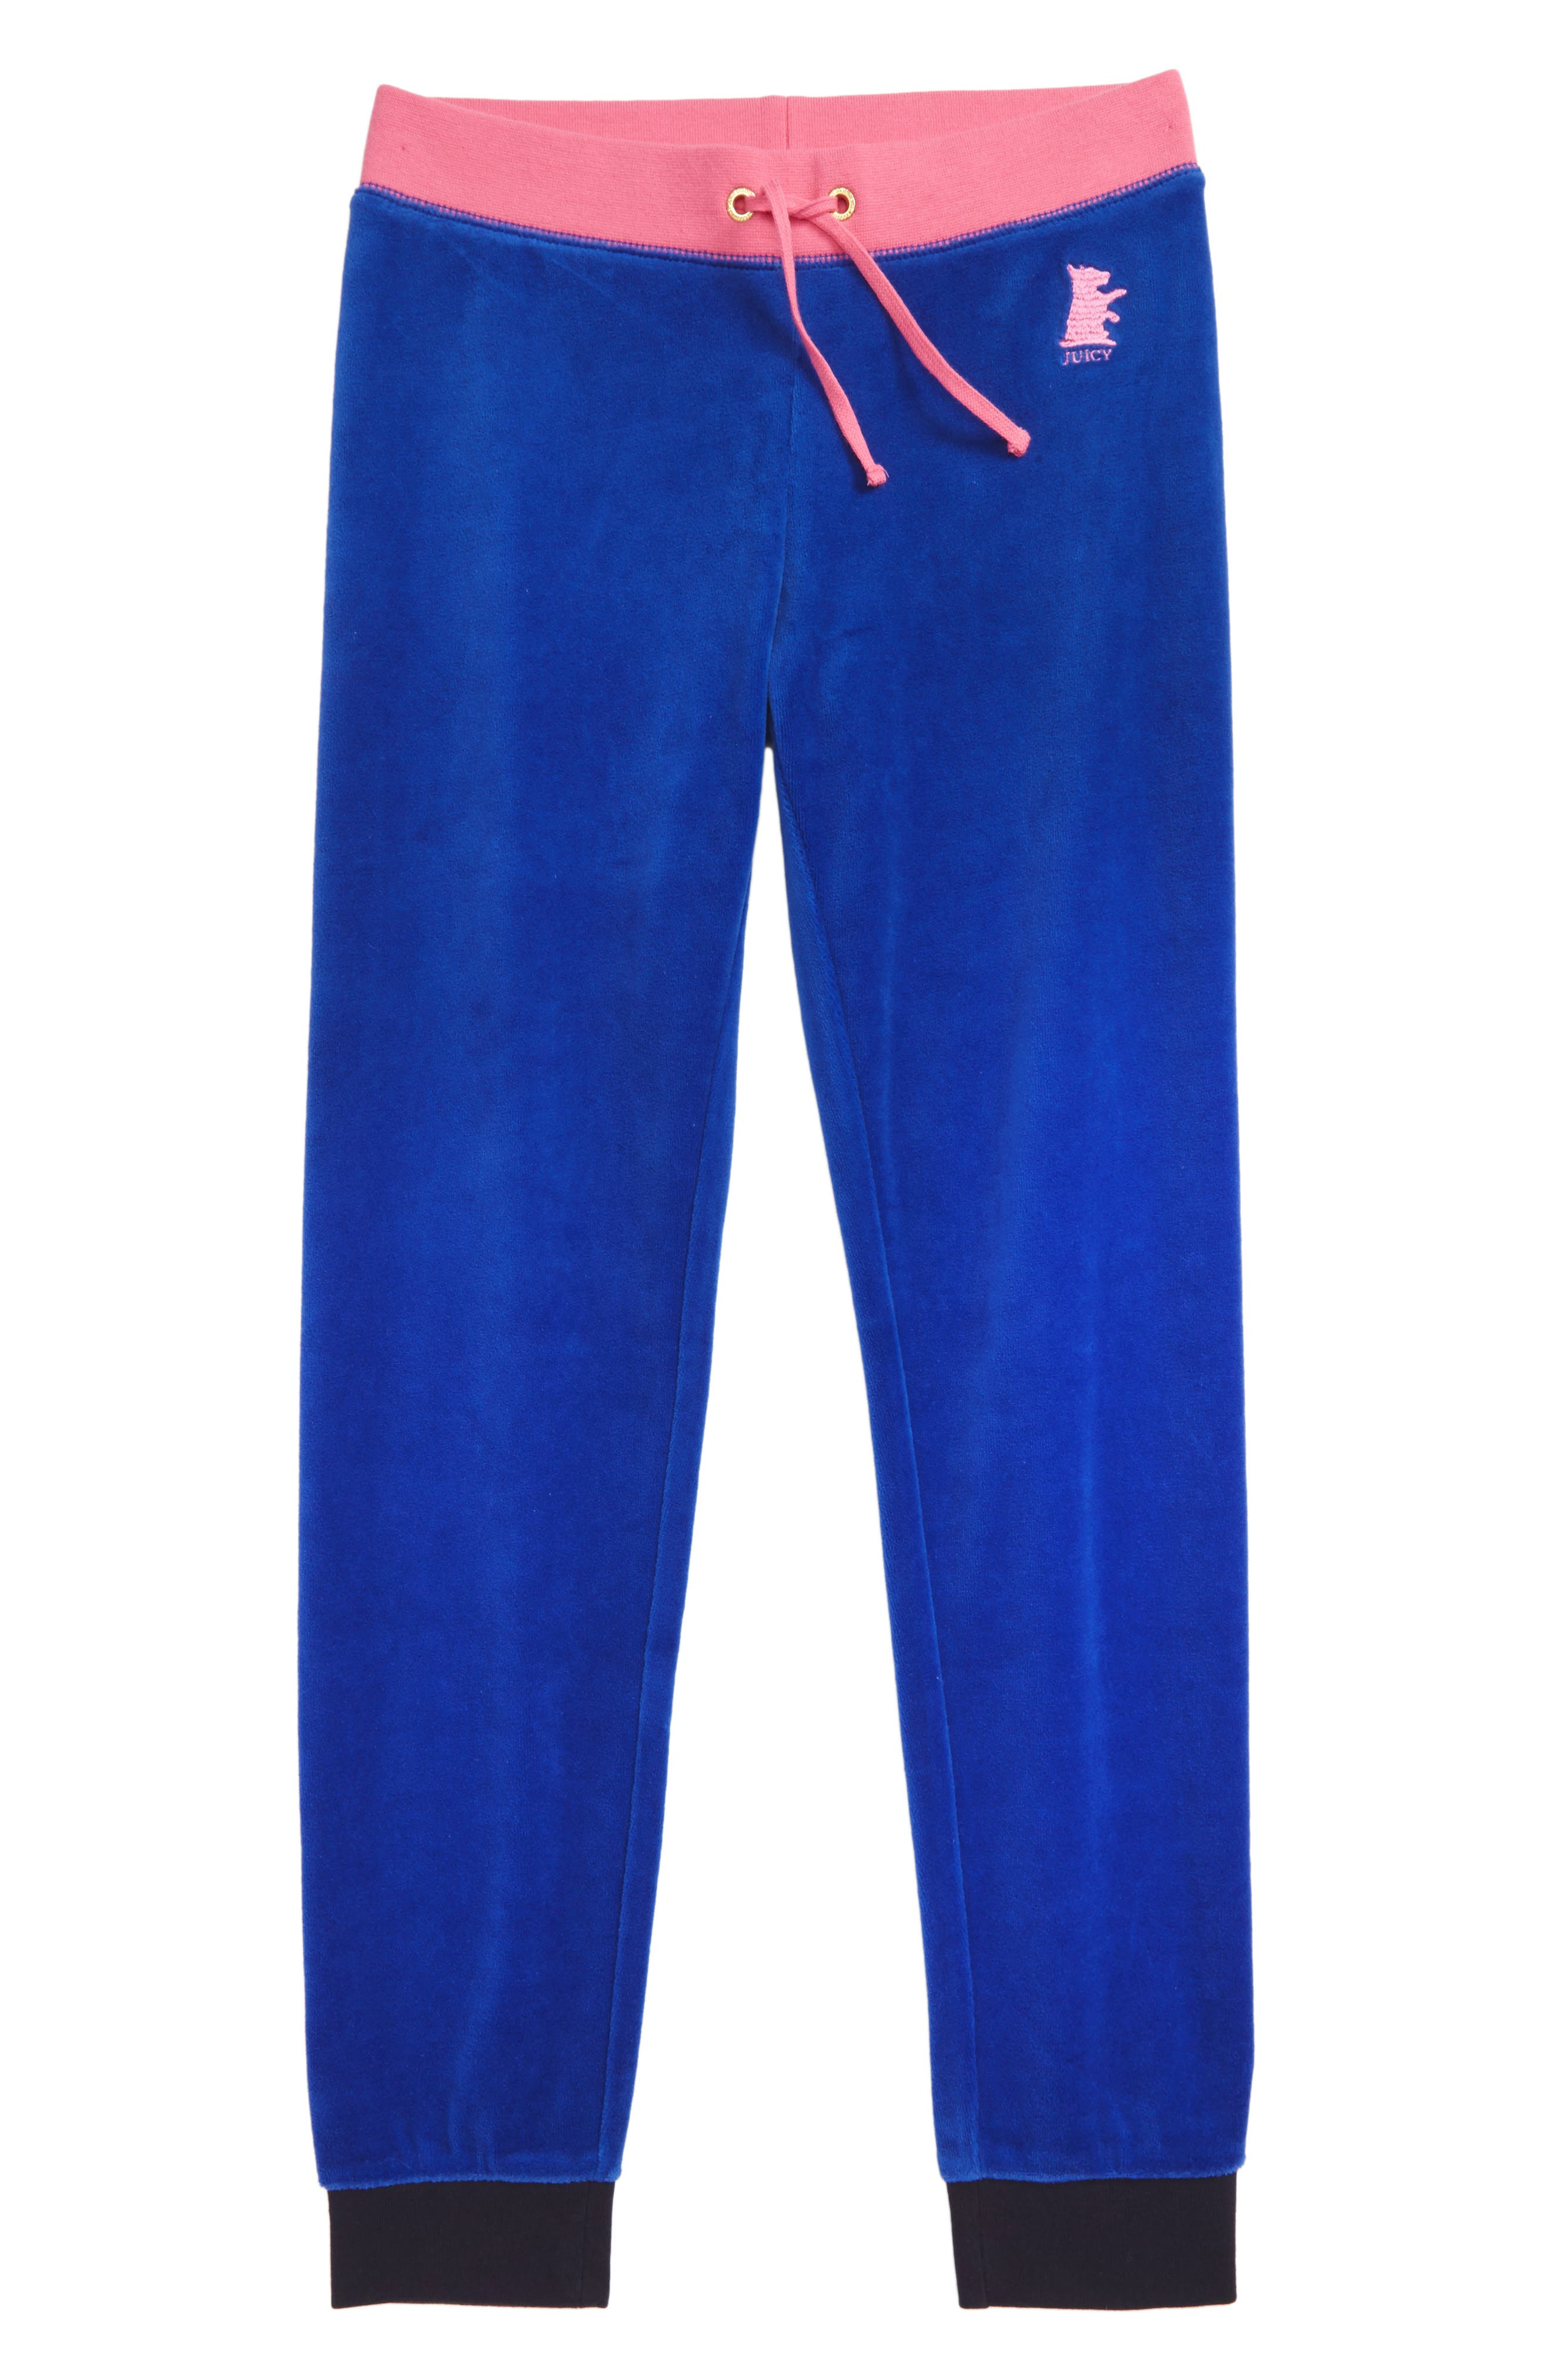 Zuma Velour Pants,                             Main thumbnail 1, color,                             BLUE NIGHT